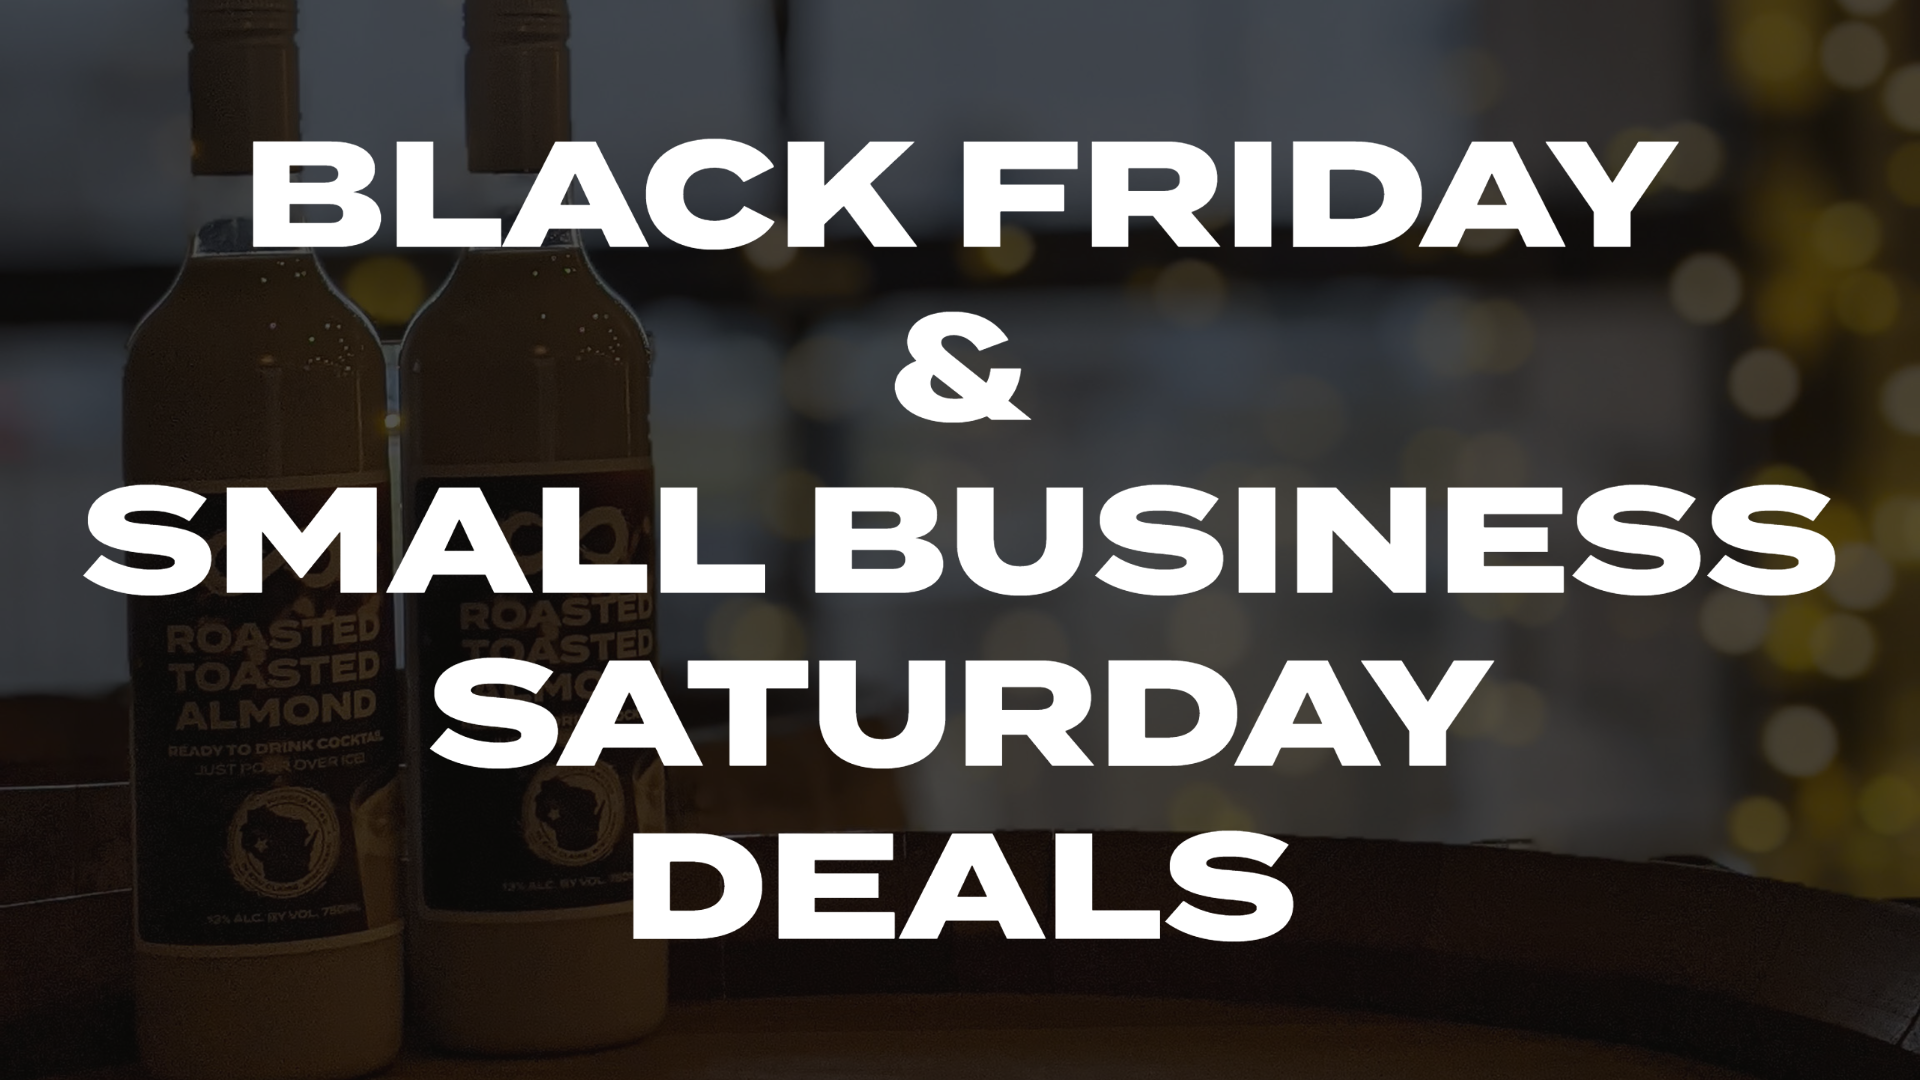 BLACK FRIDAY AND SMALL BUSINESS SATURDAY DEALS